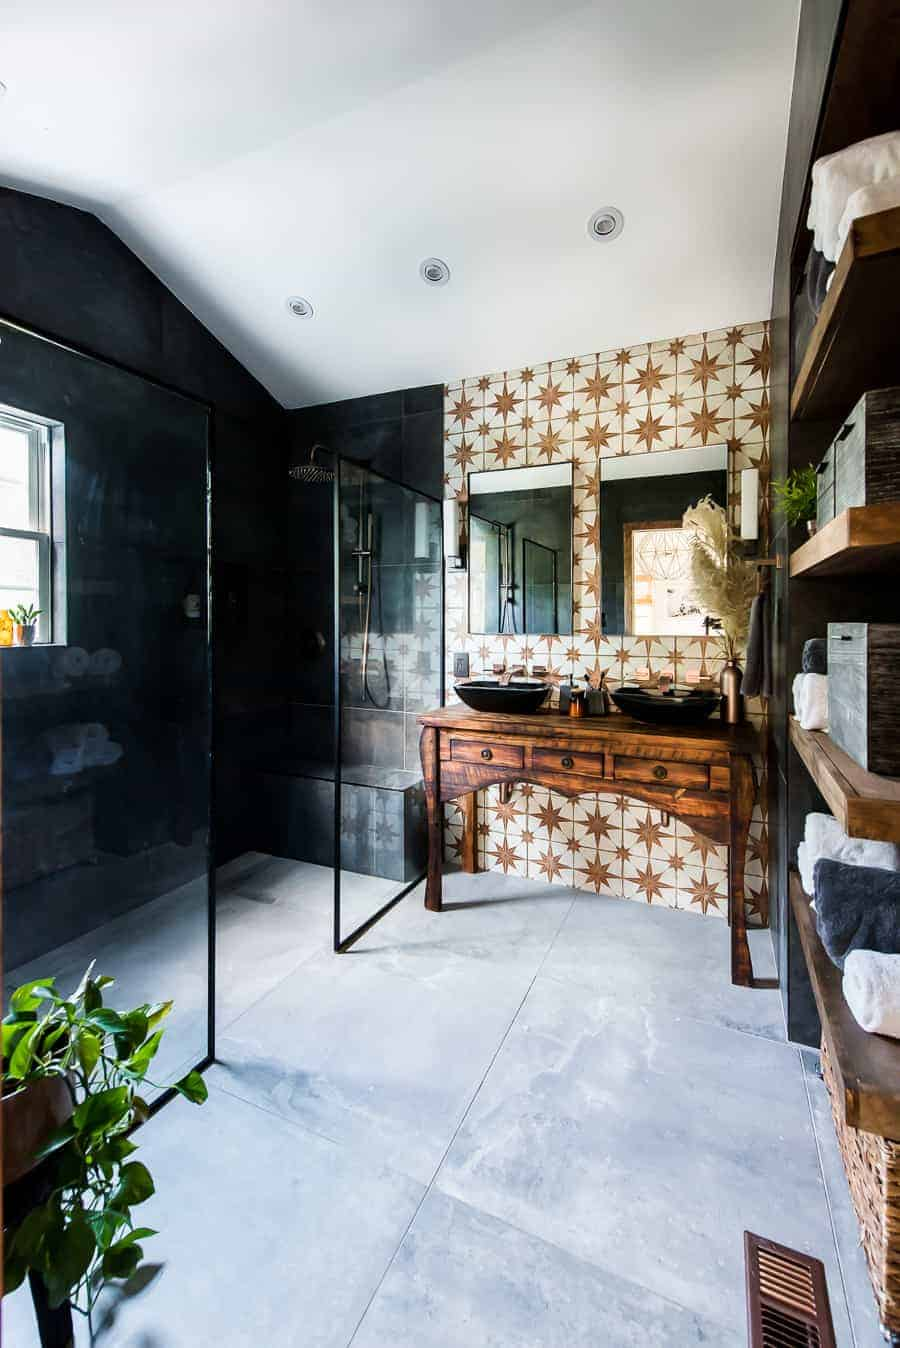 Fabulous master bathroom design with black tiles.